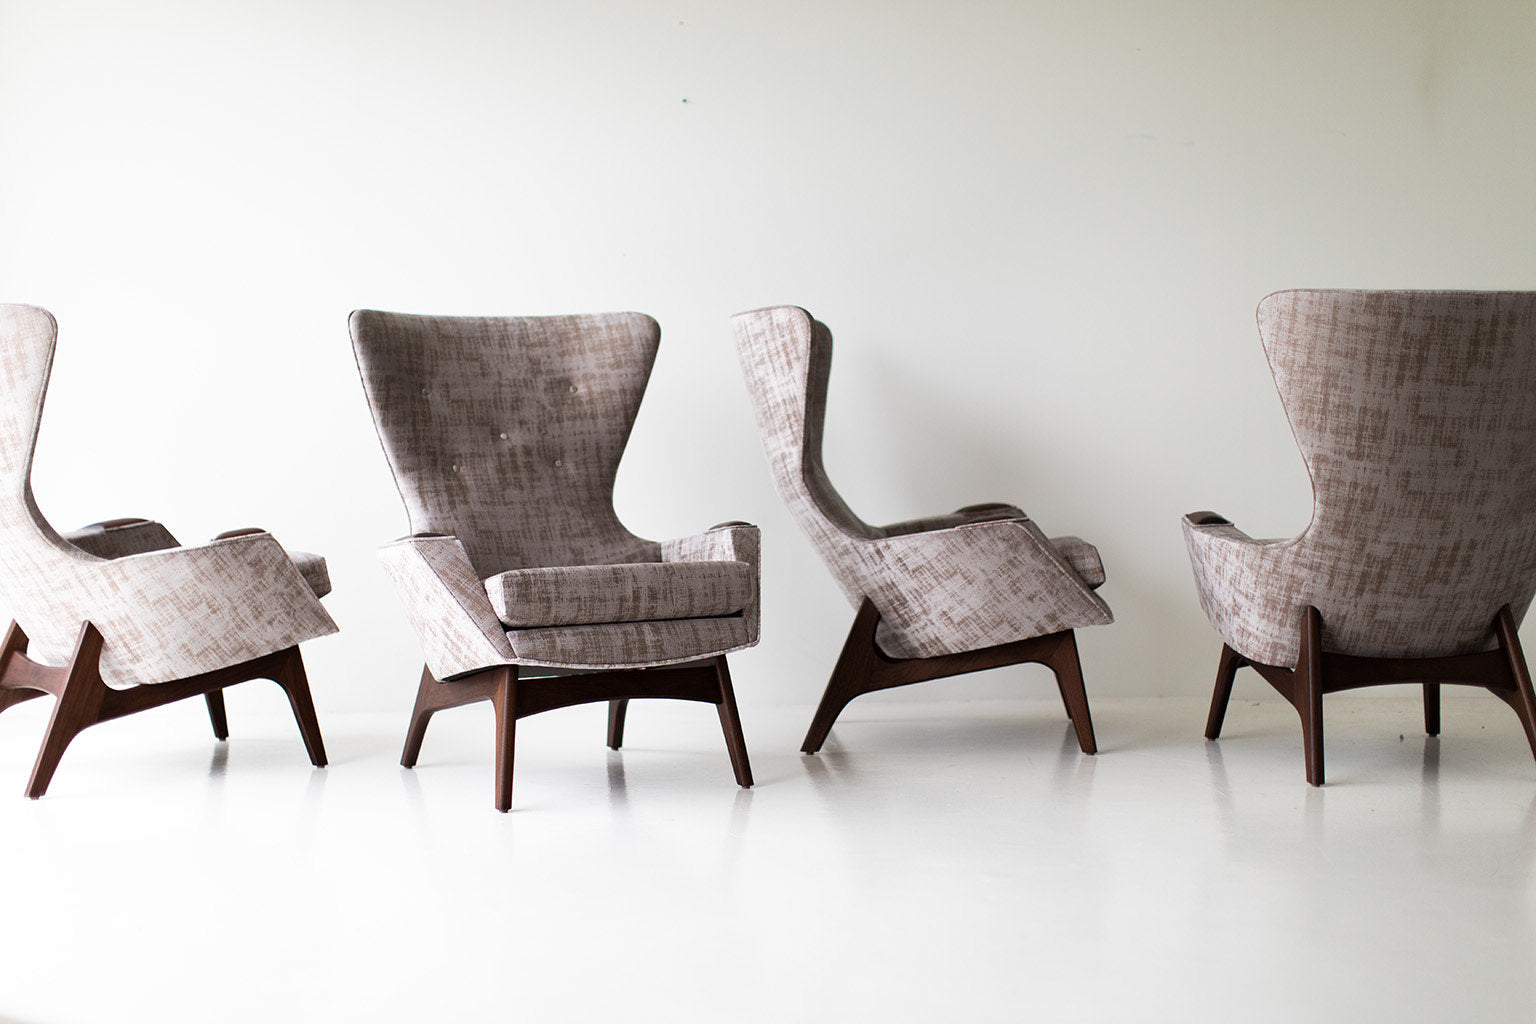 I07A4882-Small-Wing-Chairs-1410-03